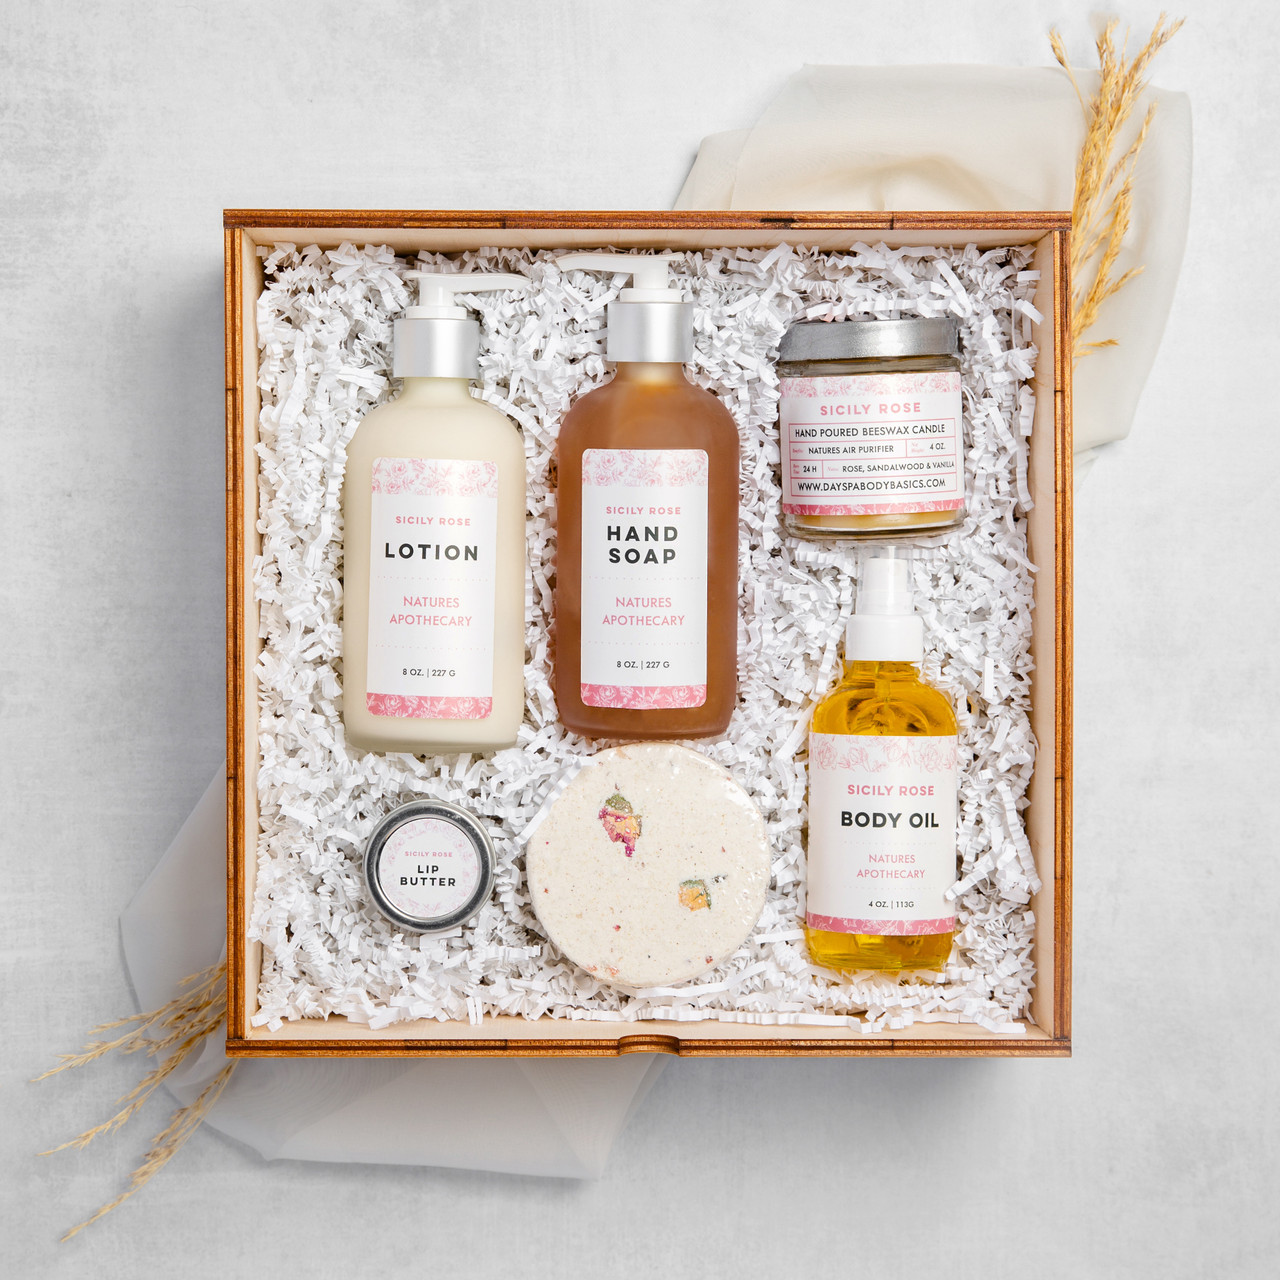 Sicily Rose -  The Gift of Luxury - Perfect House Warming Gift - Curated Gifts By DAYSPA Body Basicsdy Basics Gift Box Made in USA